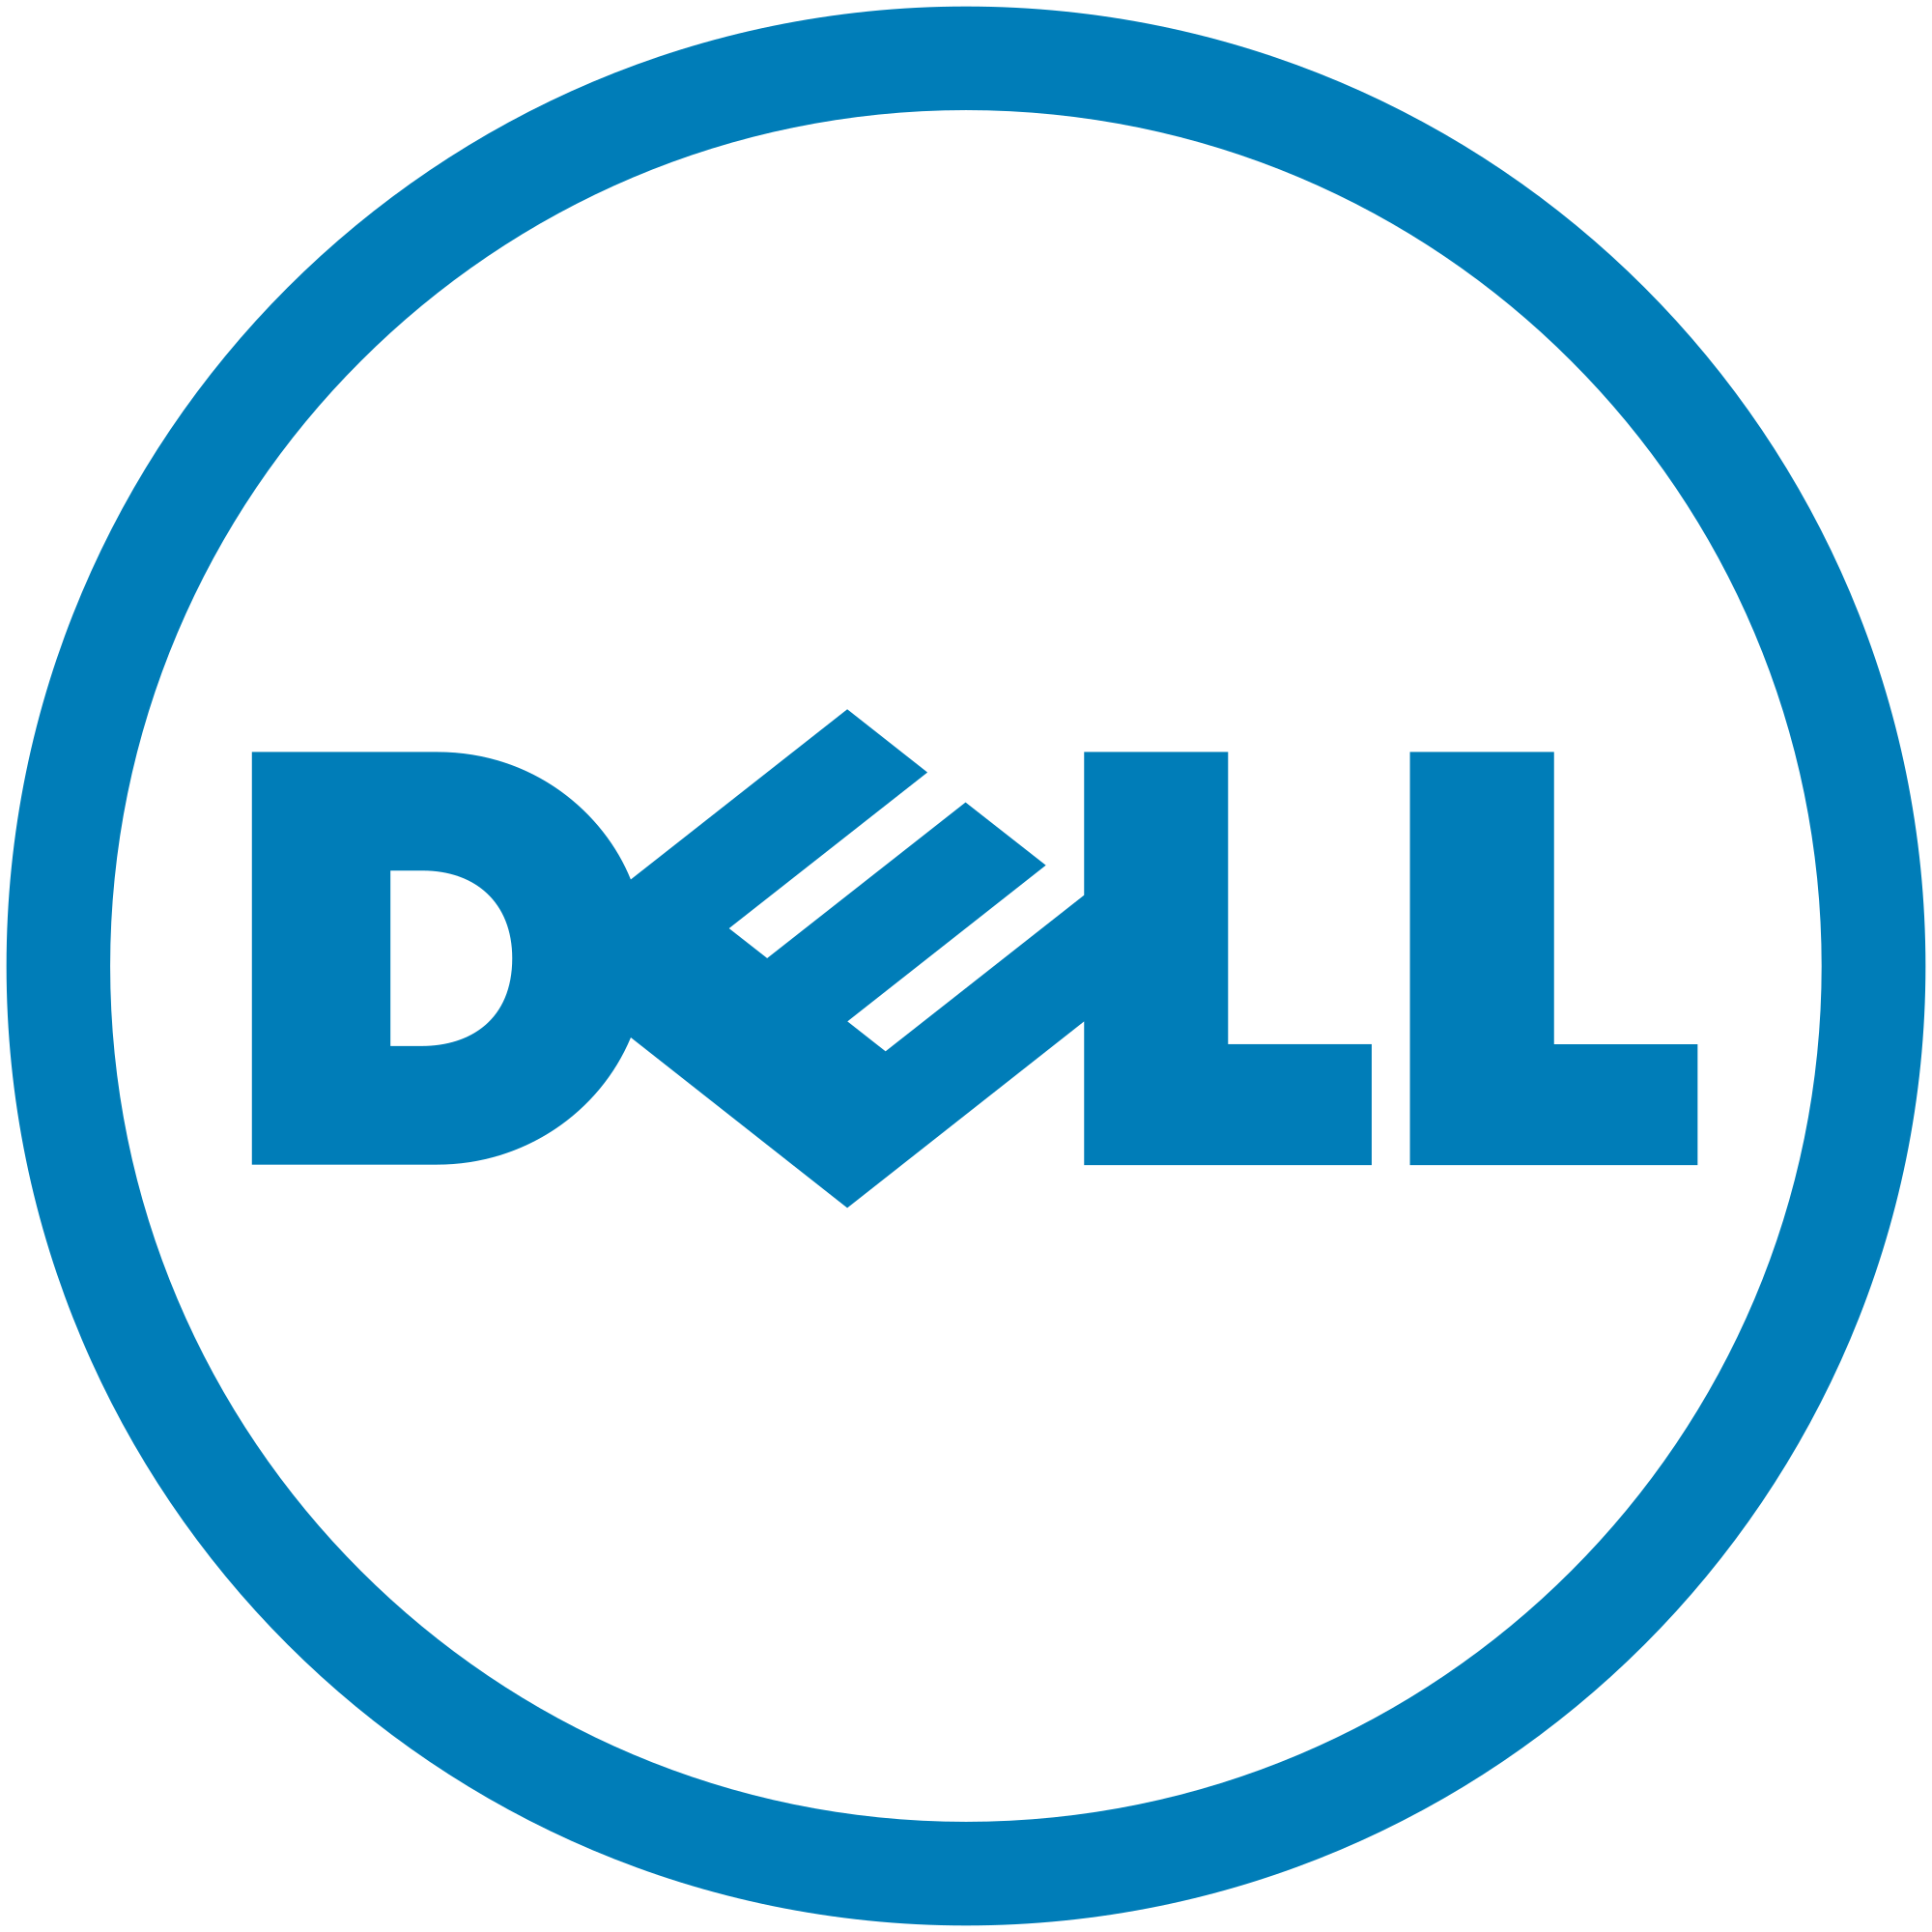 Dell Printer Phone Number